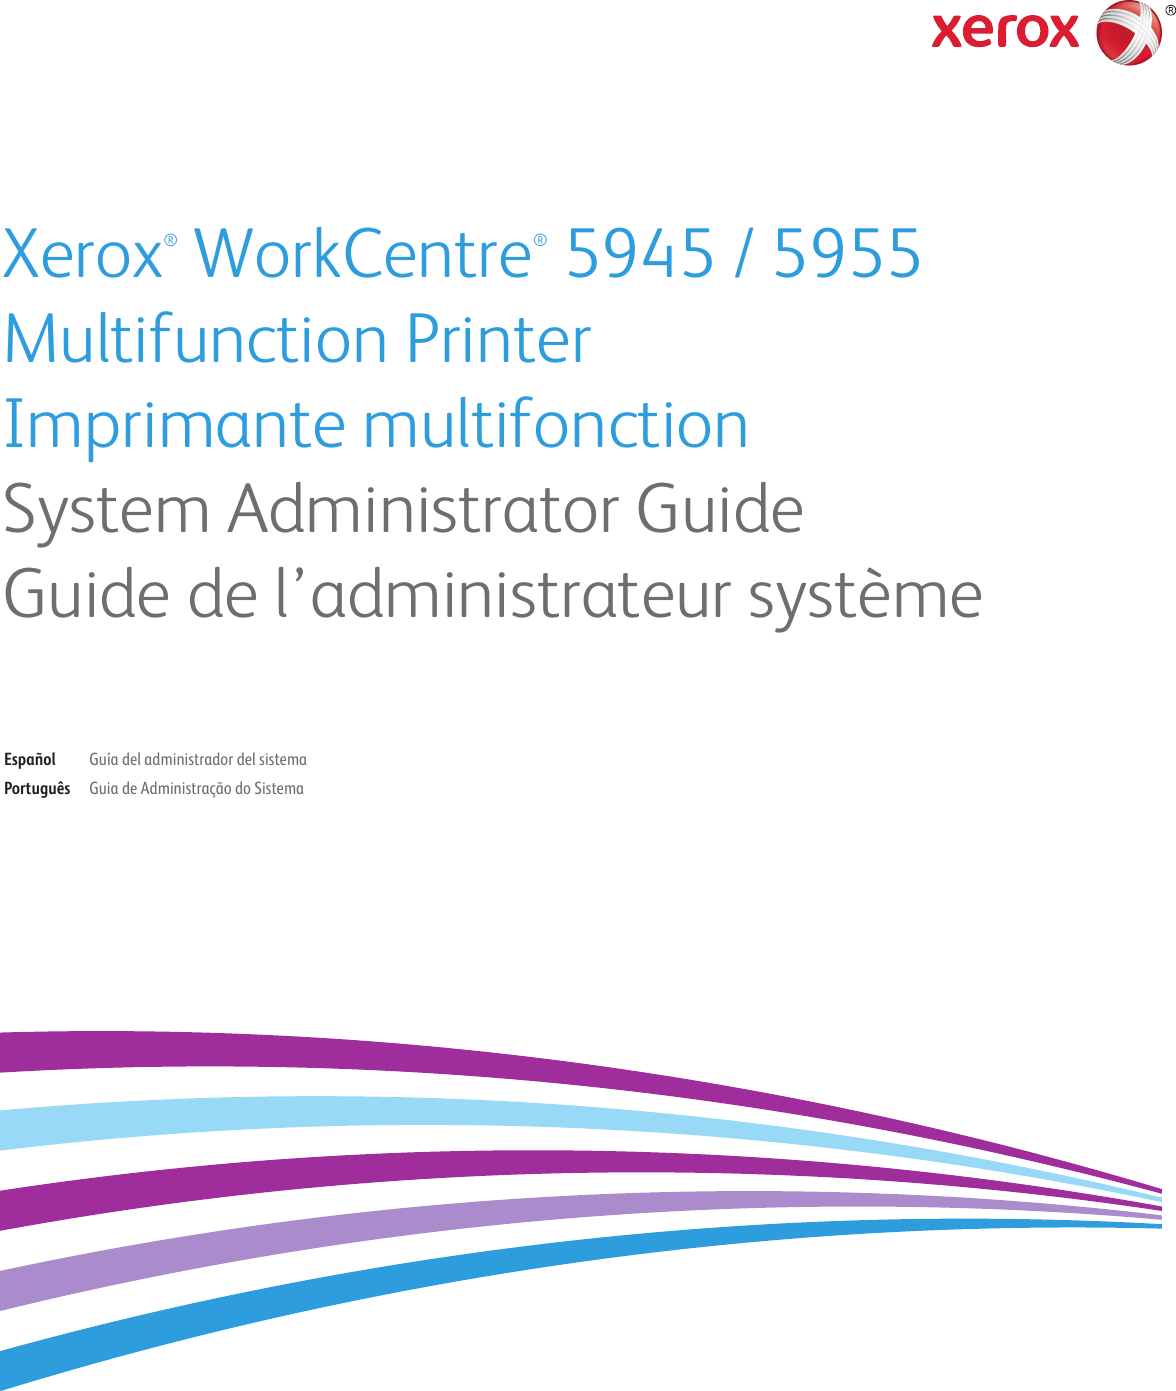 Xerox workcentre 5945 5955 administrators guide xerox workcentre xerox workcentre 5945 5955 administrators guide xerox workcentre 59455955 multifunction printer 1betcityfo Gallery